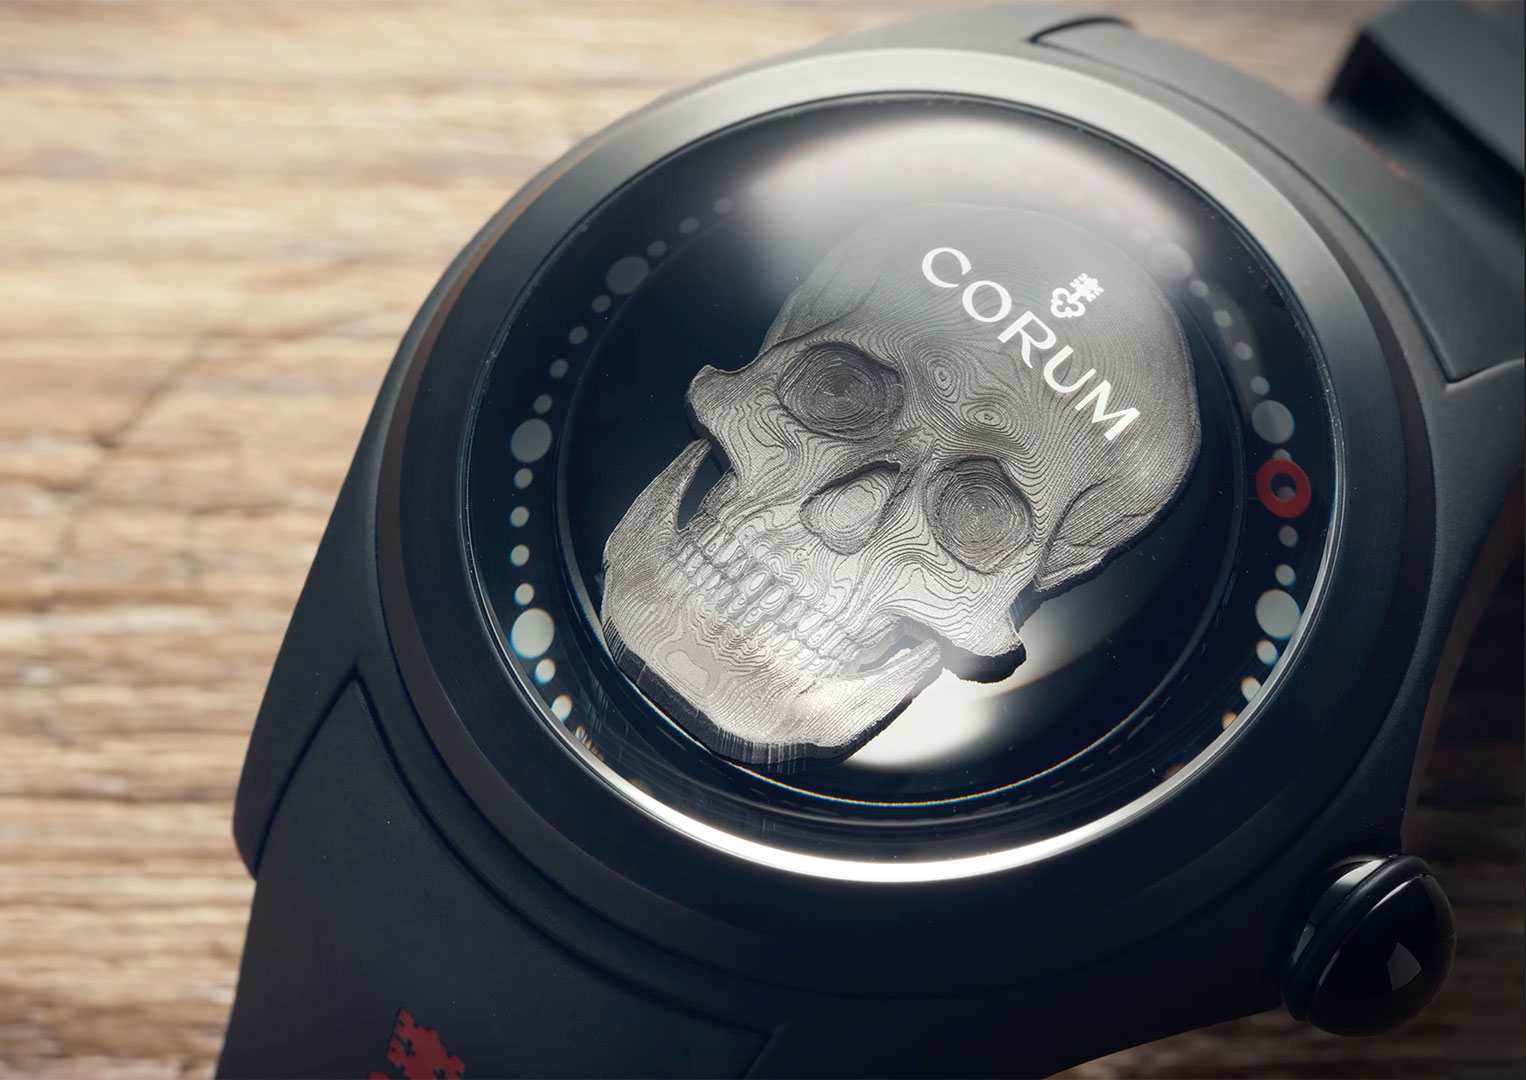 There are only 188 Corum Bubble Magical 3D Skull watches